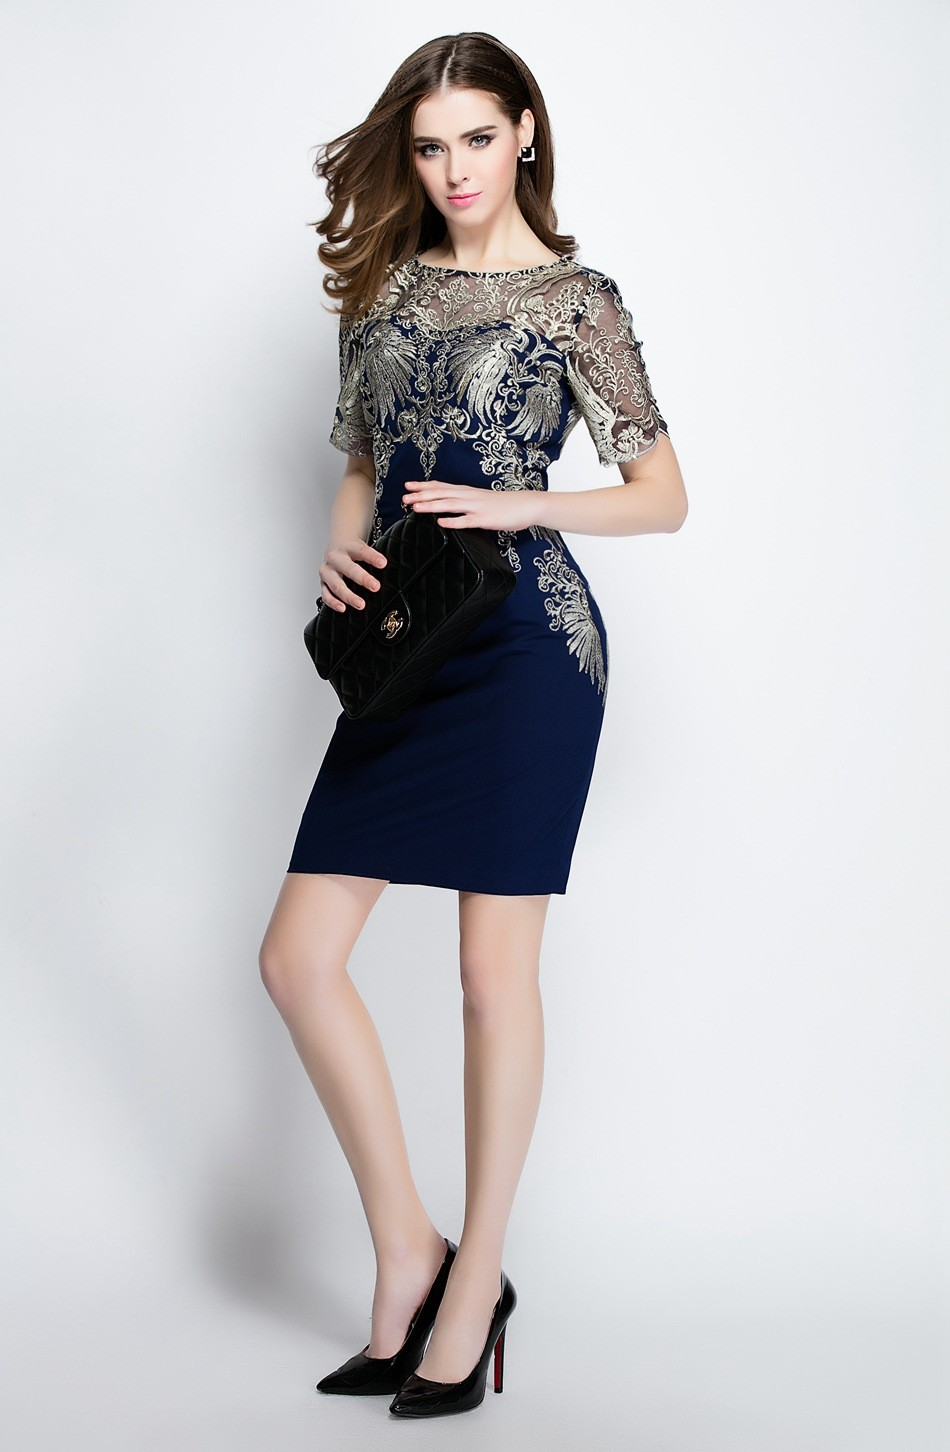 high quality 2016 new arrivals Fashion women's woman ladies elegant womens embroidery mini blue brand party runway dress dresses